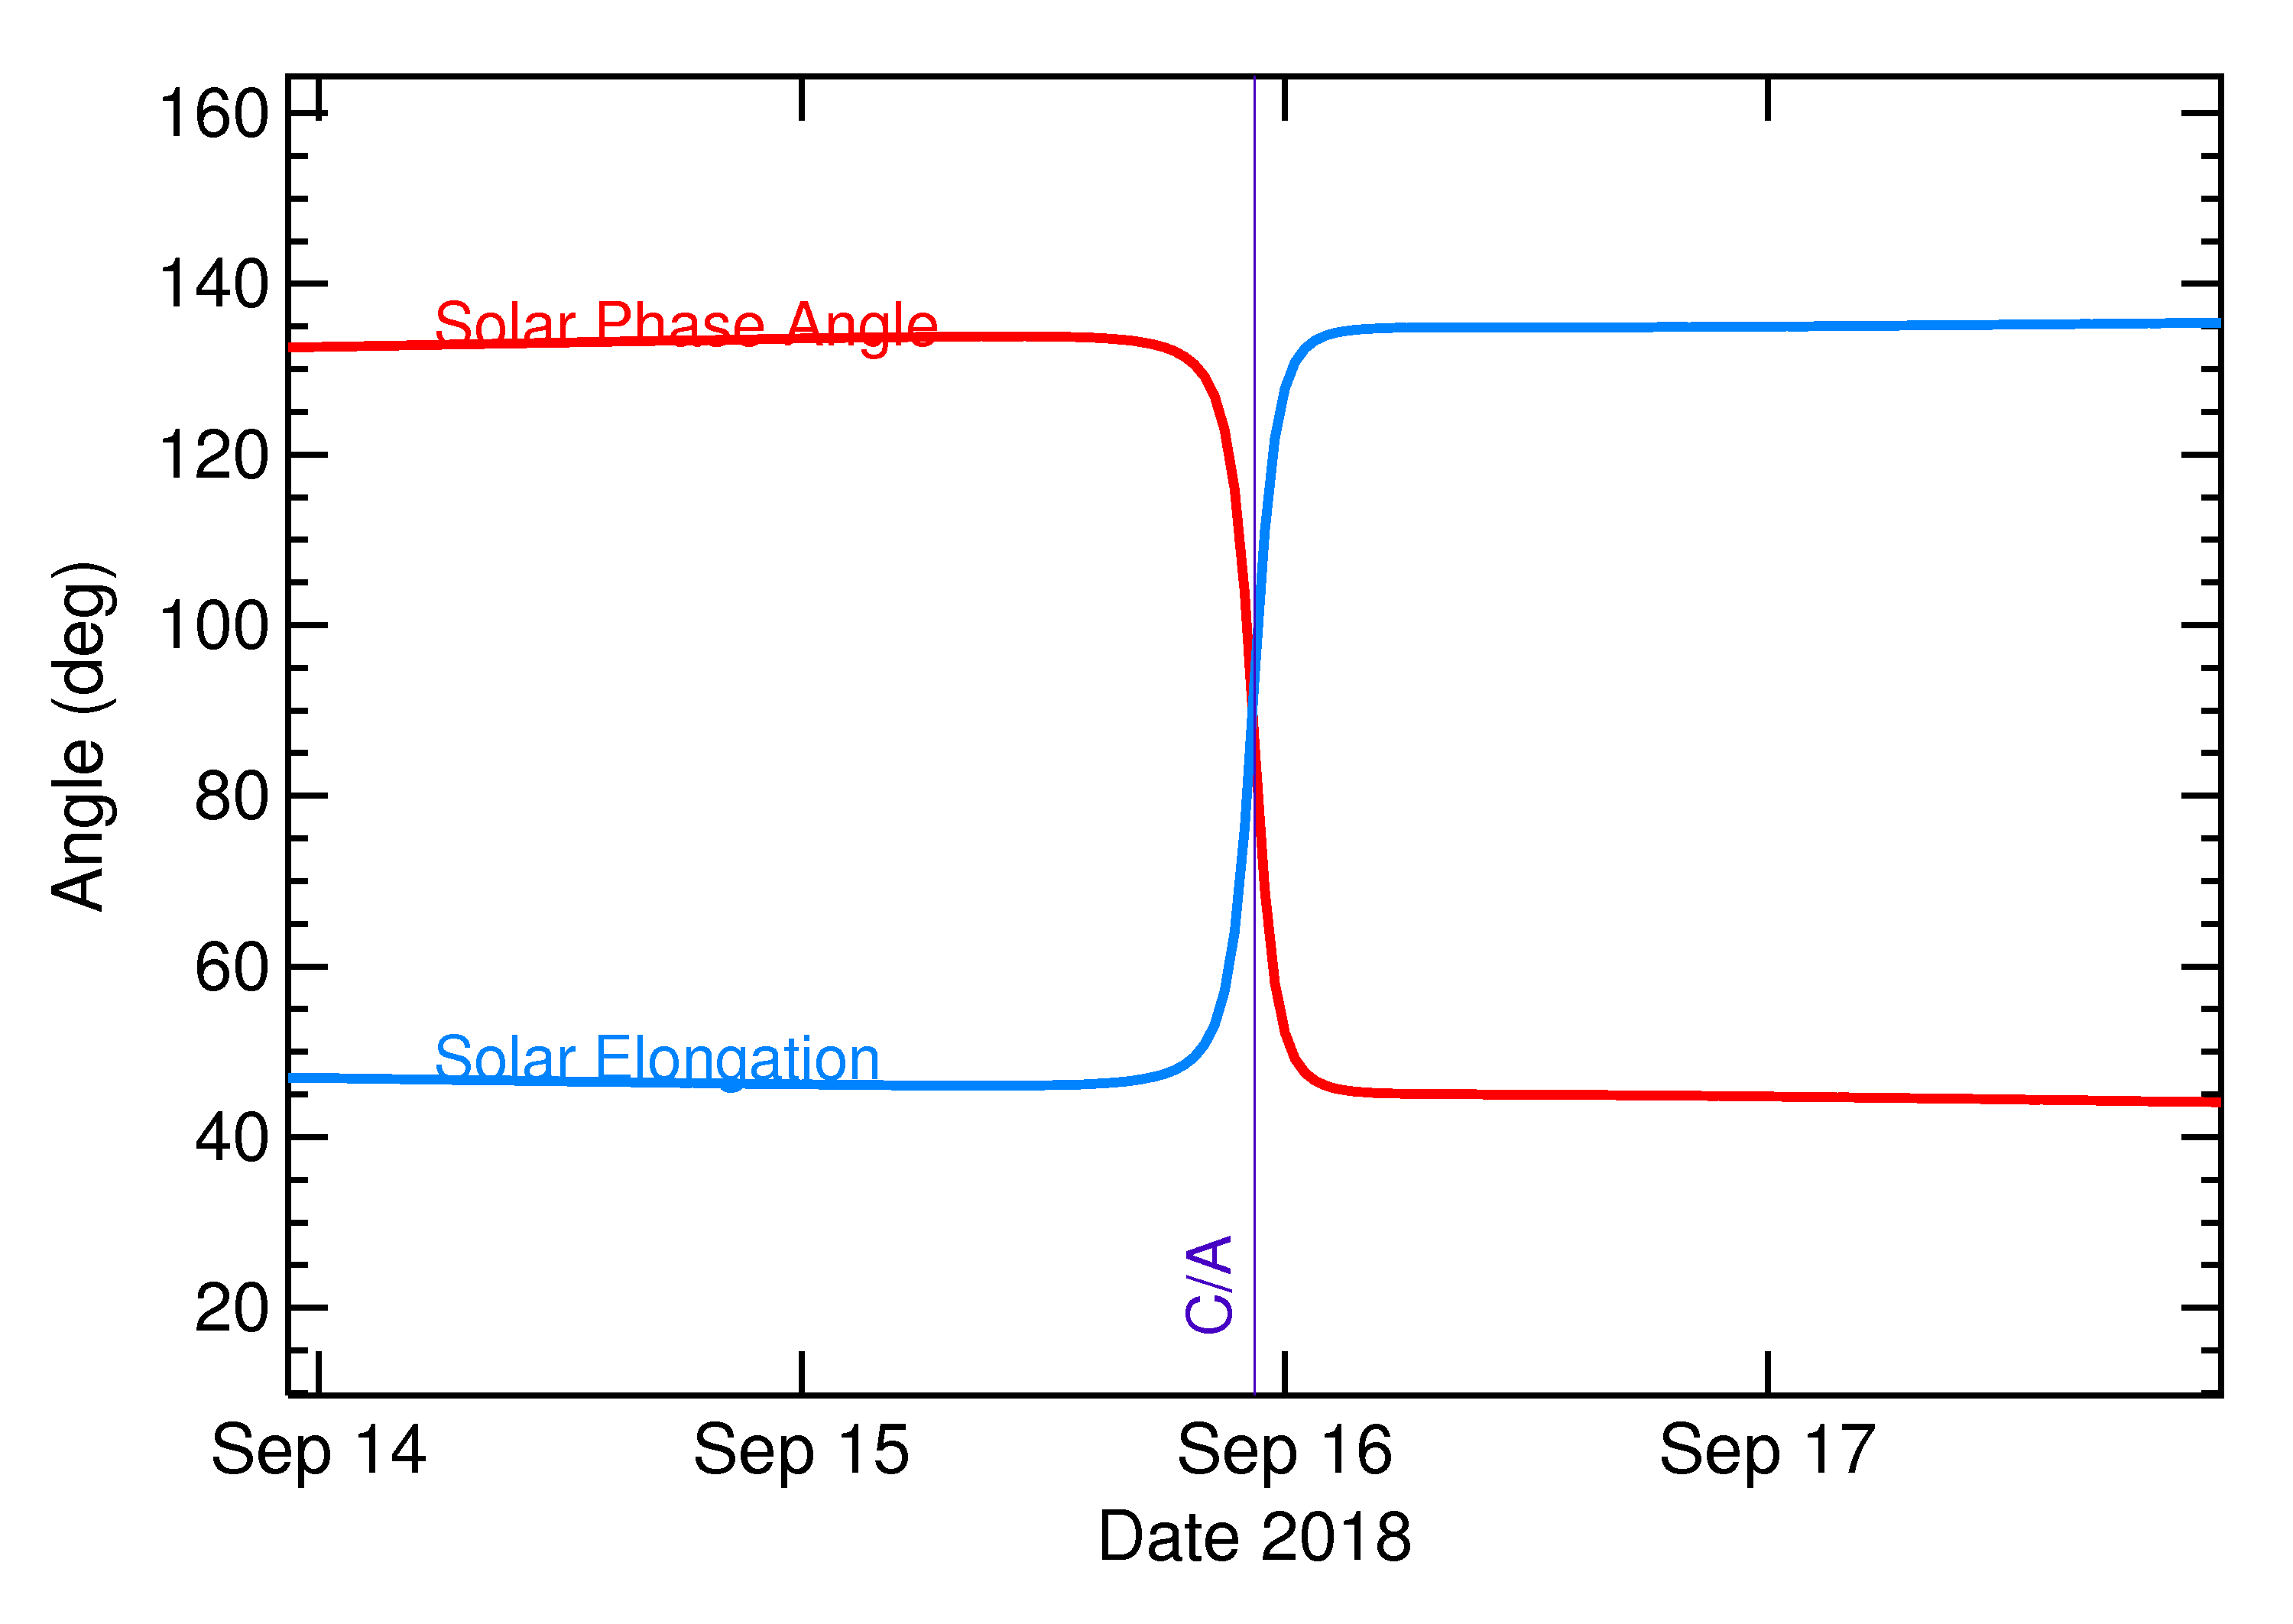 Solar Elongation and Solar Phase Angle of 2018 SM in the days around closest approach